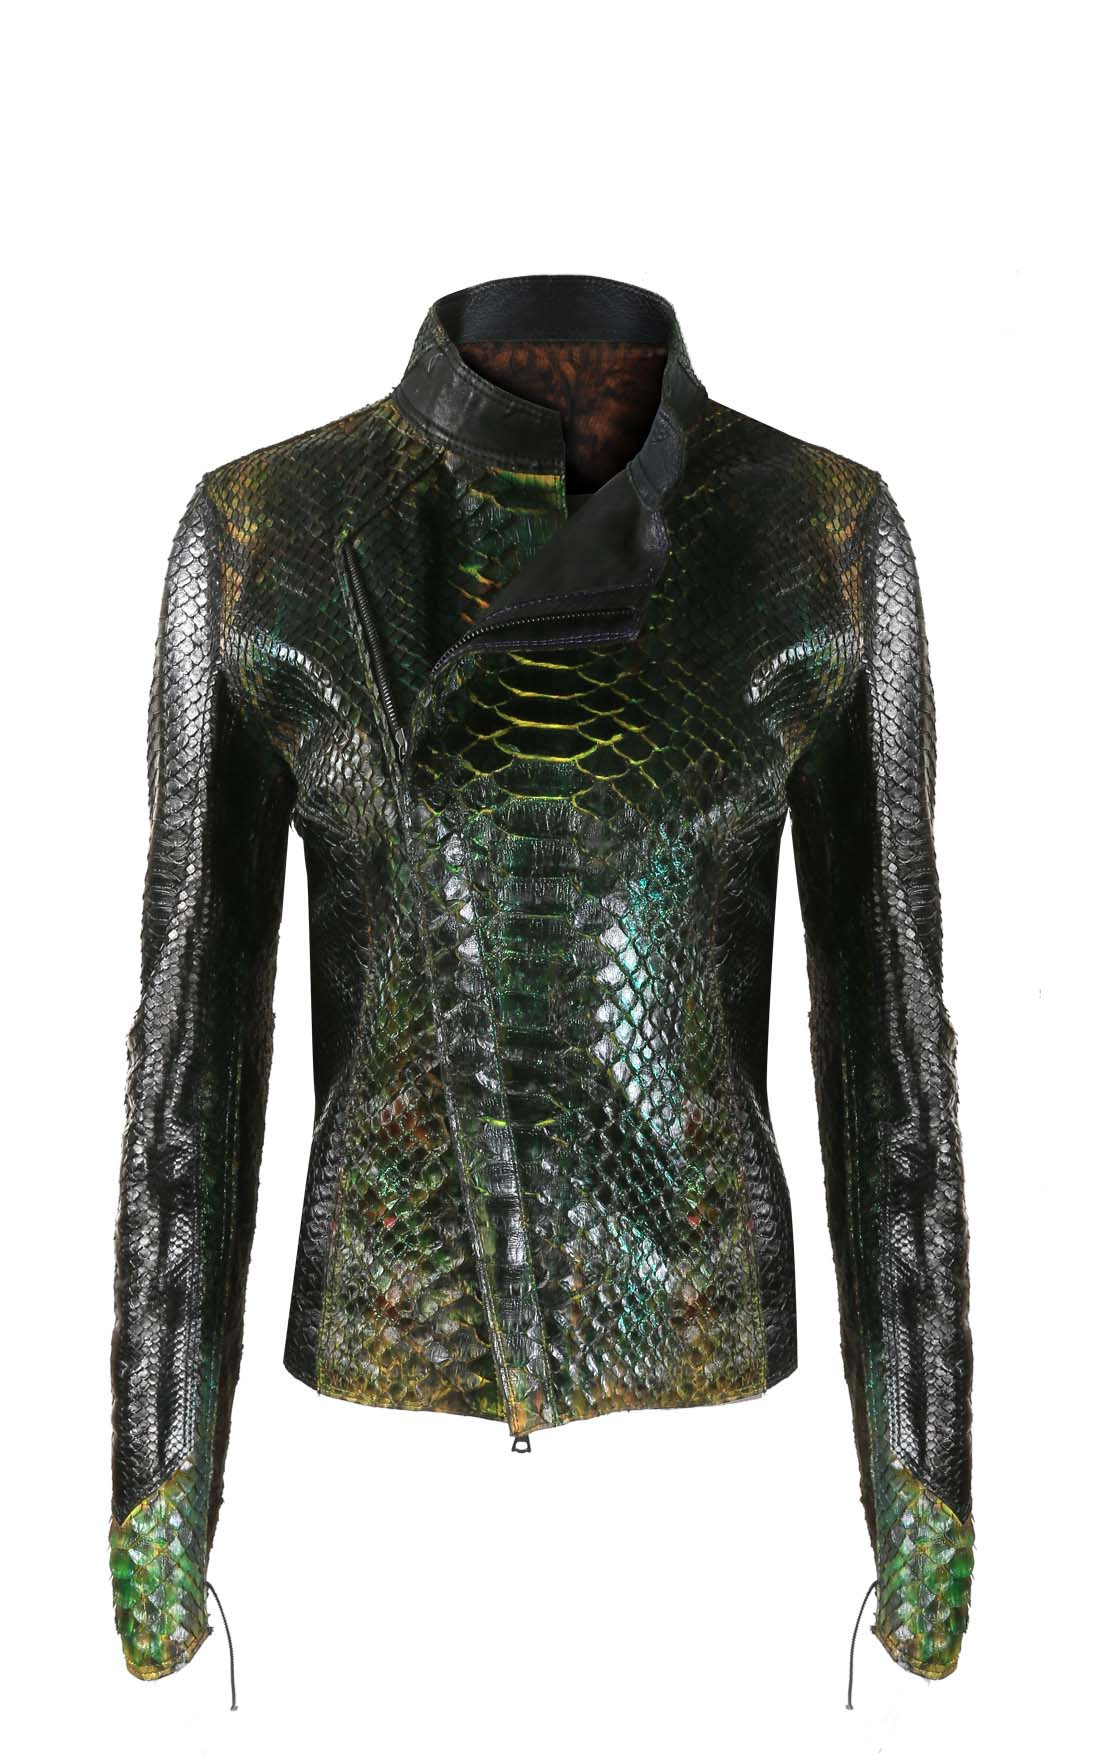 Anton - Green Glittery Python Jacket with Lace Inserts (Pythongreen)